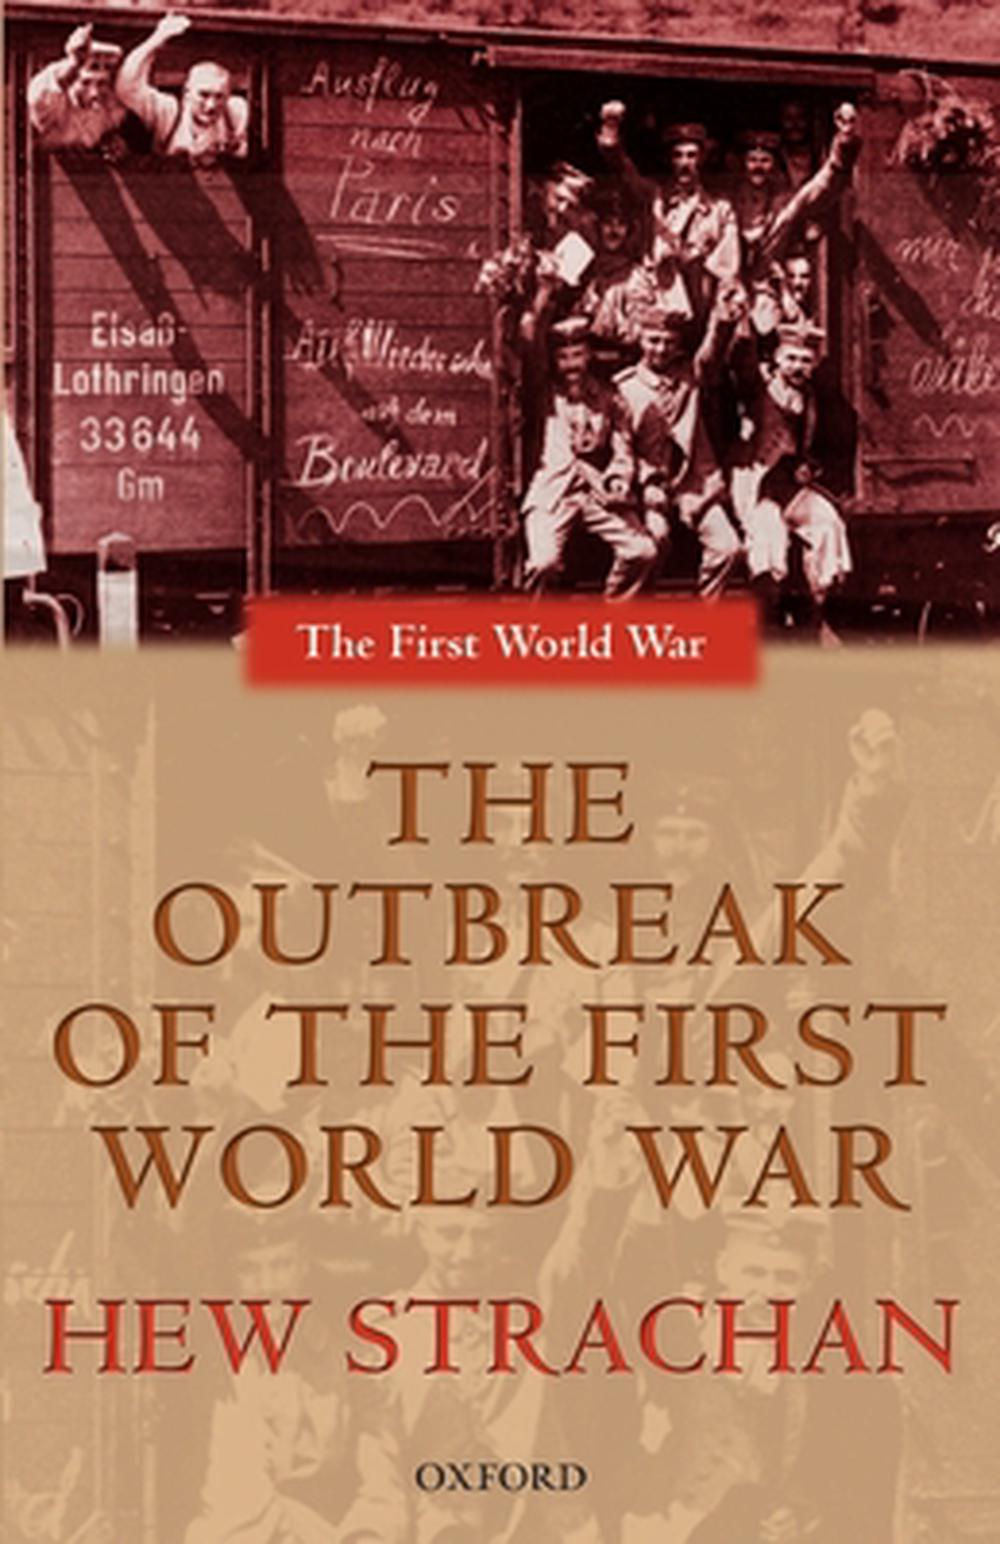 the outbreak of the first world war Conclusion herwig, the editors of a collection of essays the origins of world war i (2002), accept the opinion that ultimate responsibility for war rests with germany and that her outbreak was deliberately provoked by german leaders.